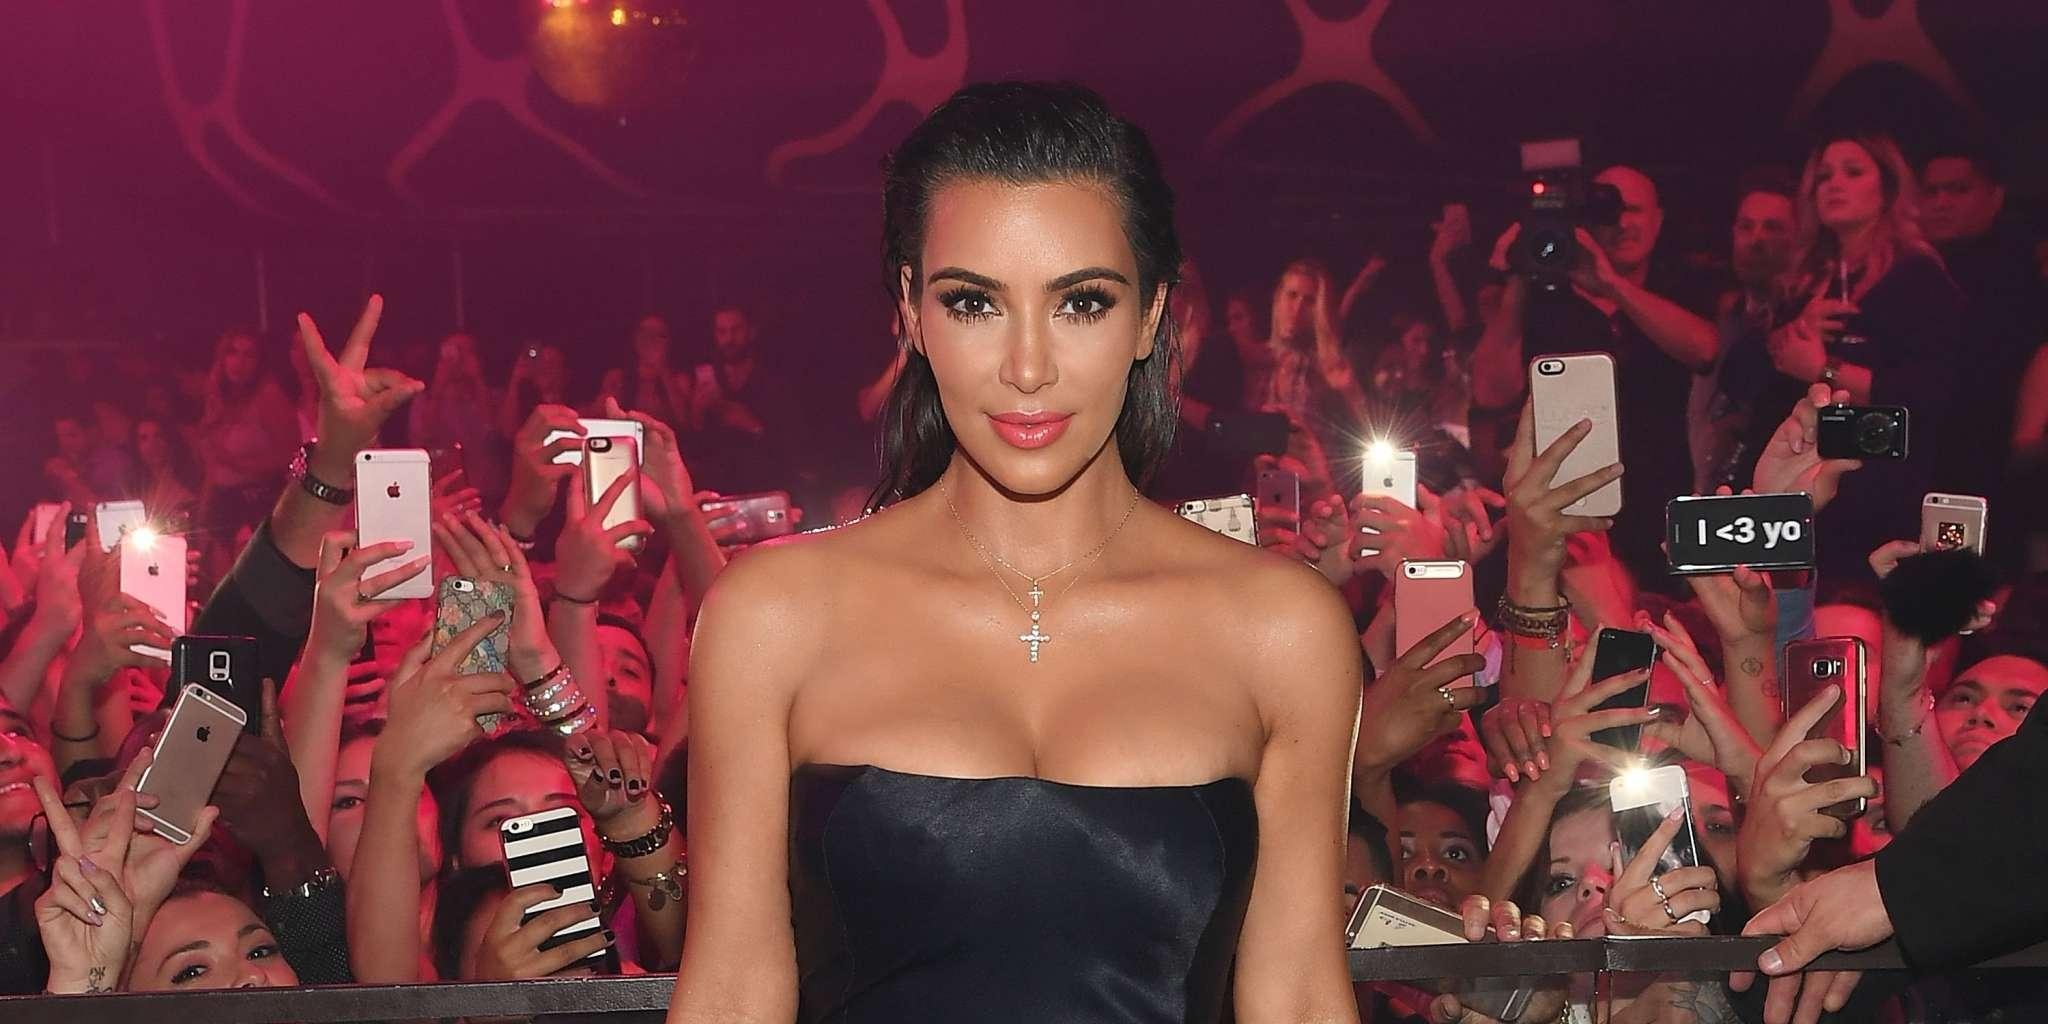 Kim Kardashian Gets An Offer For A Future Job At A Law Firm